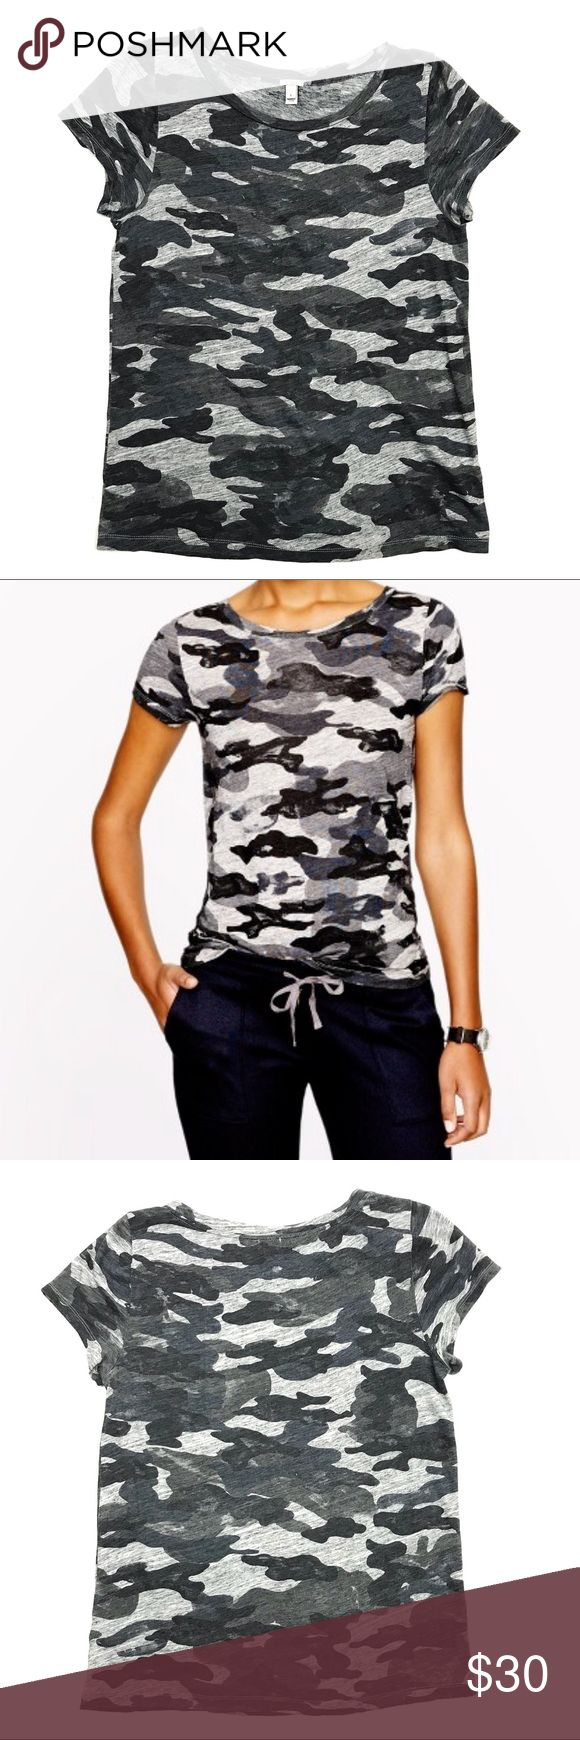 J Crew Gray Camo Tee Shirt Cotton Modal J Crew Gray Camo Tee Shirt Womens L Cotton Modal Cap Sleeve 06545 Slim Fit   Condition: Pre-owned Gently Worn No Stains No Holes  Measurements taken while garment was laying flat: These measurements were personally taken and are approximate:  Underarm to Underarm Seam inches- 20 Length from shoulder seam to hem inches- 26 Length across Bottom inches- 21 Bottom of Sleeve Length inches- 1 J. Crew Tops